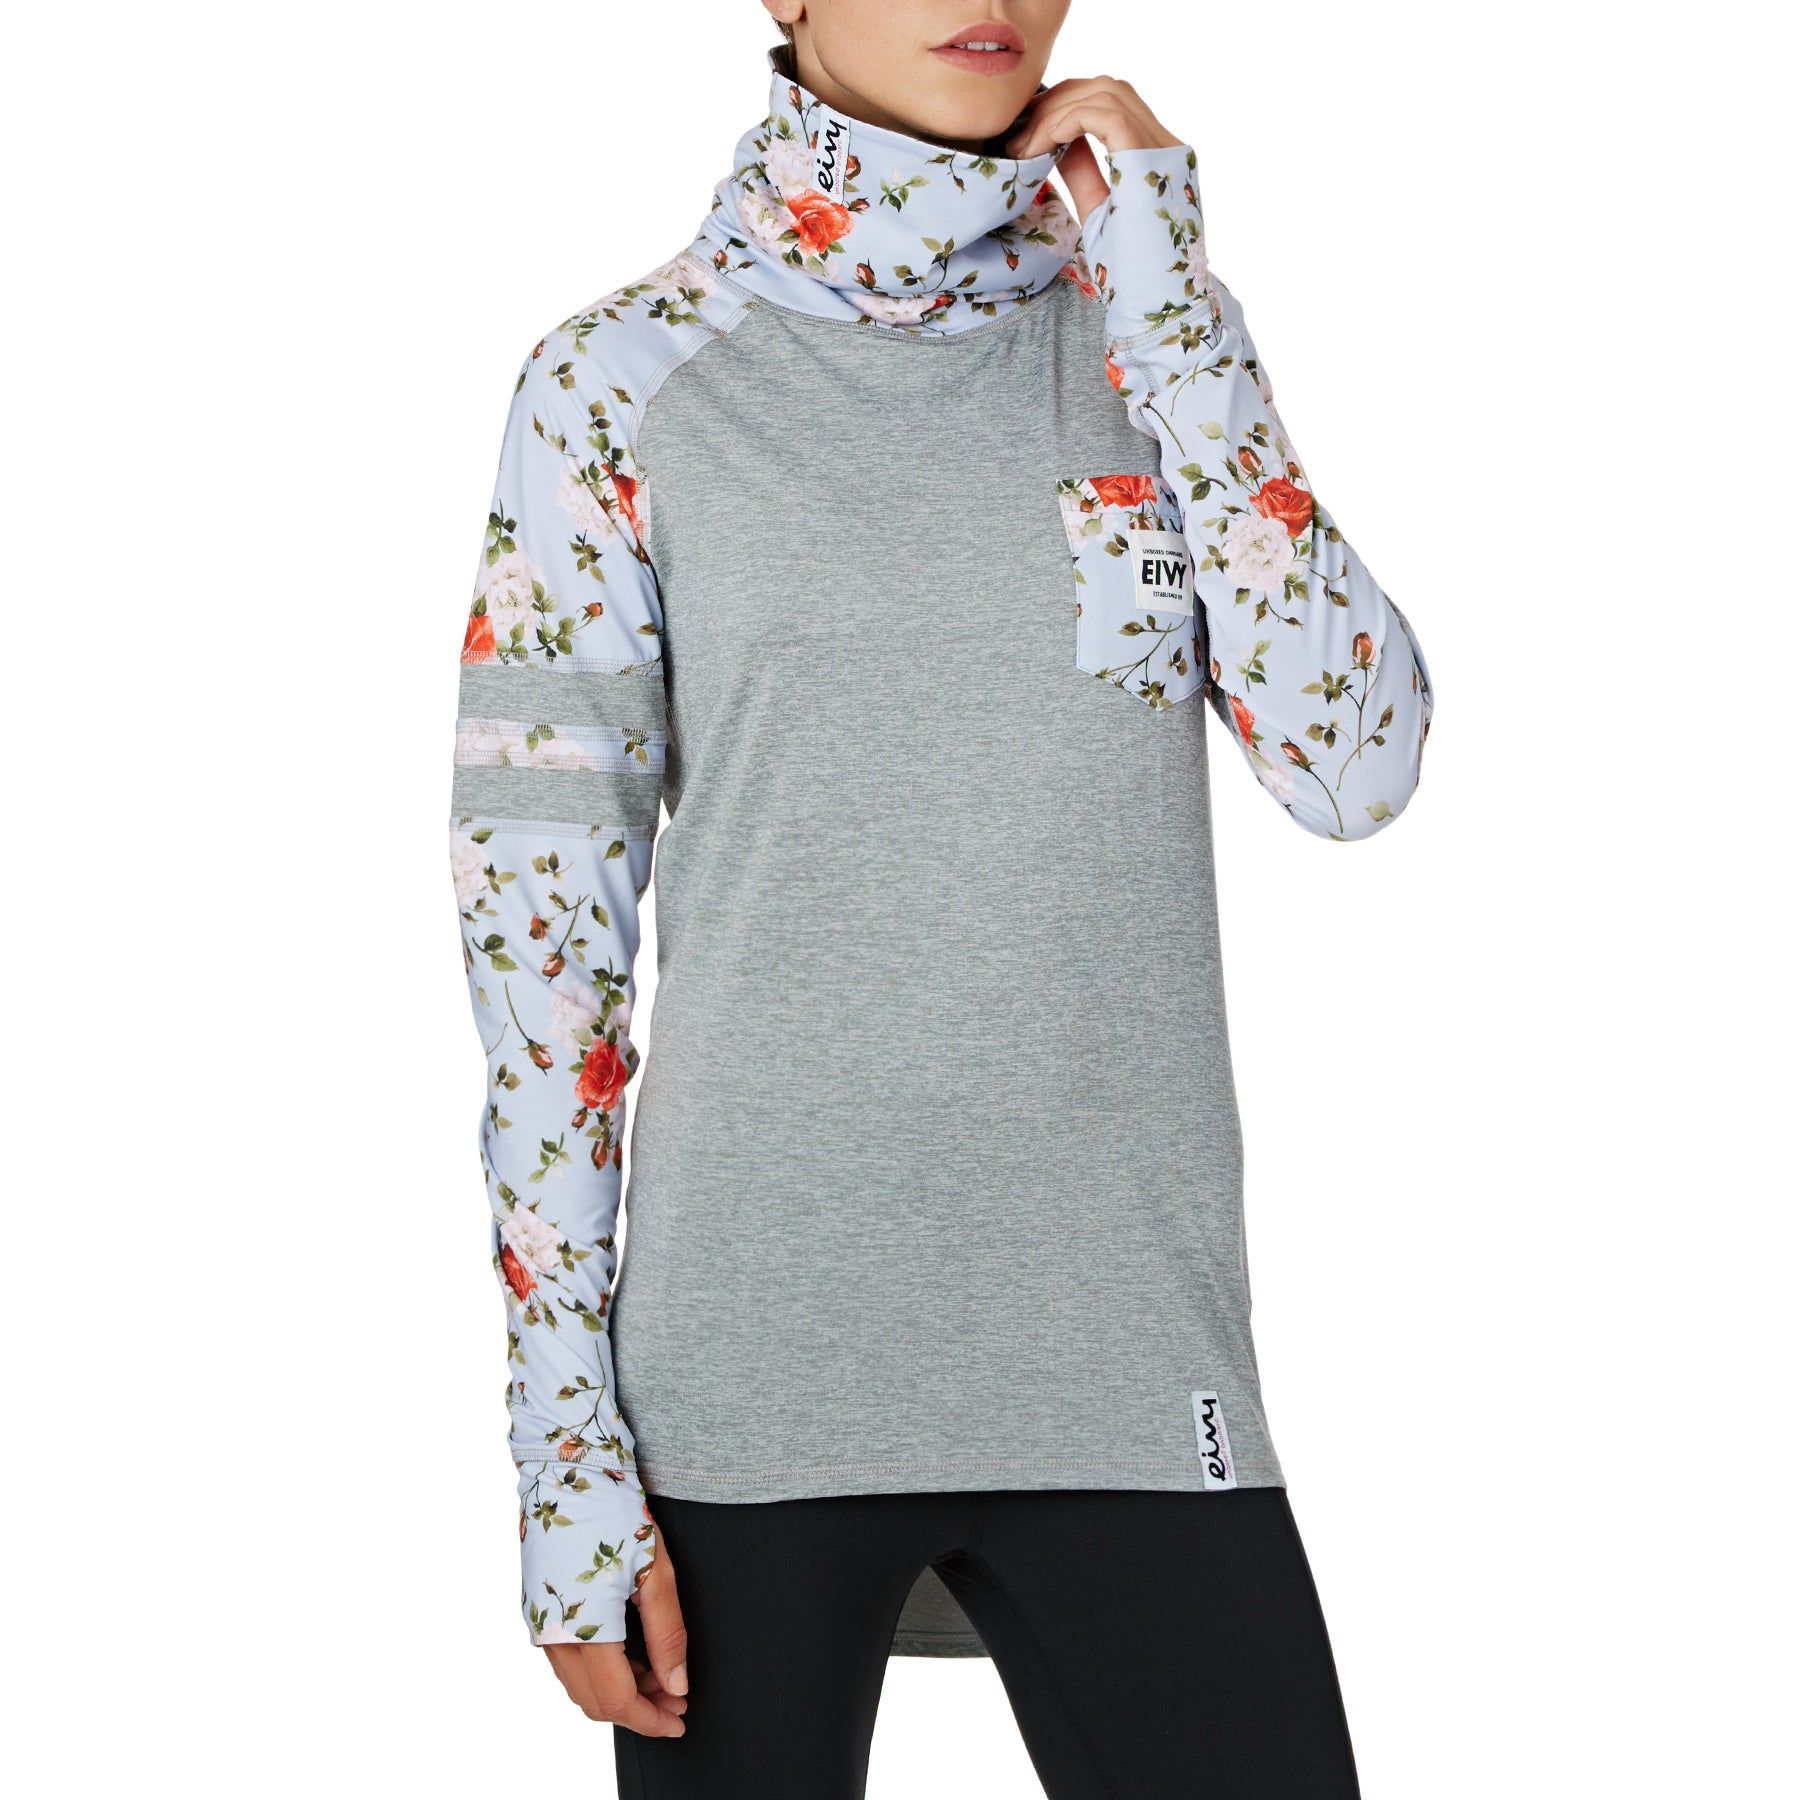 Eivy Icecold Zip Womens Base Layer Top - Rose